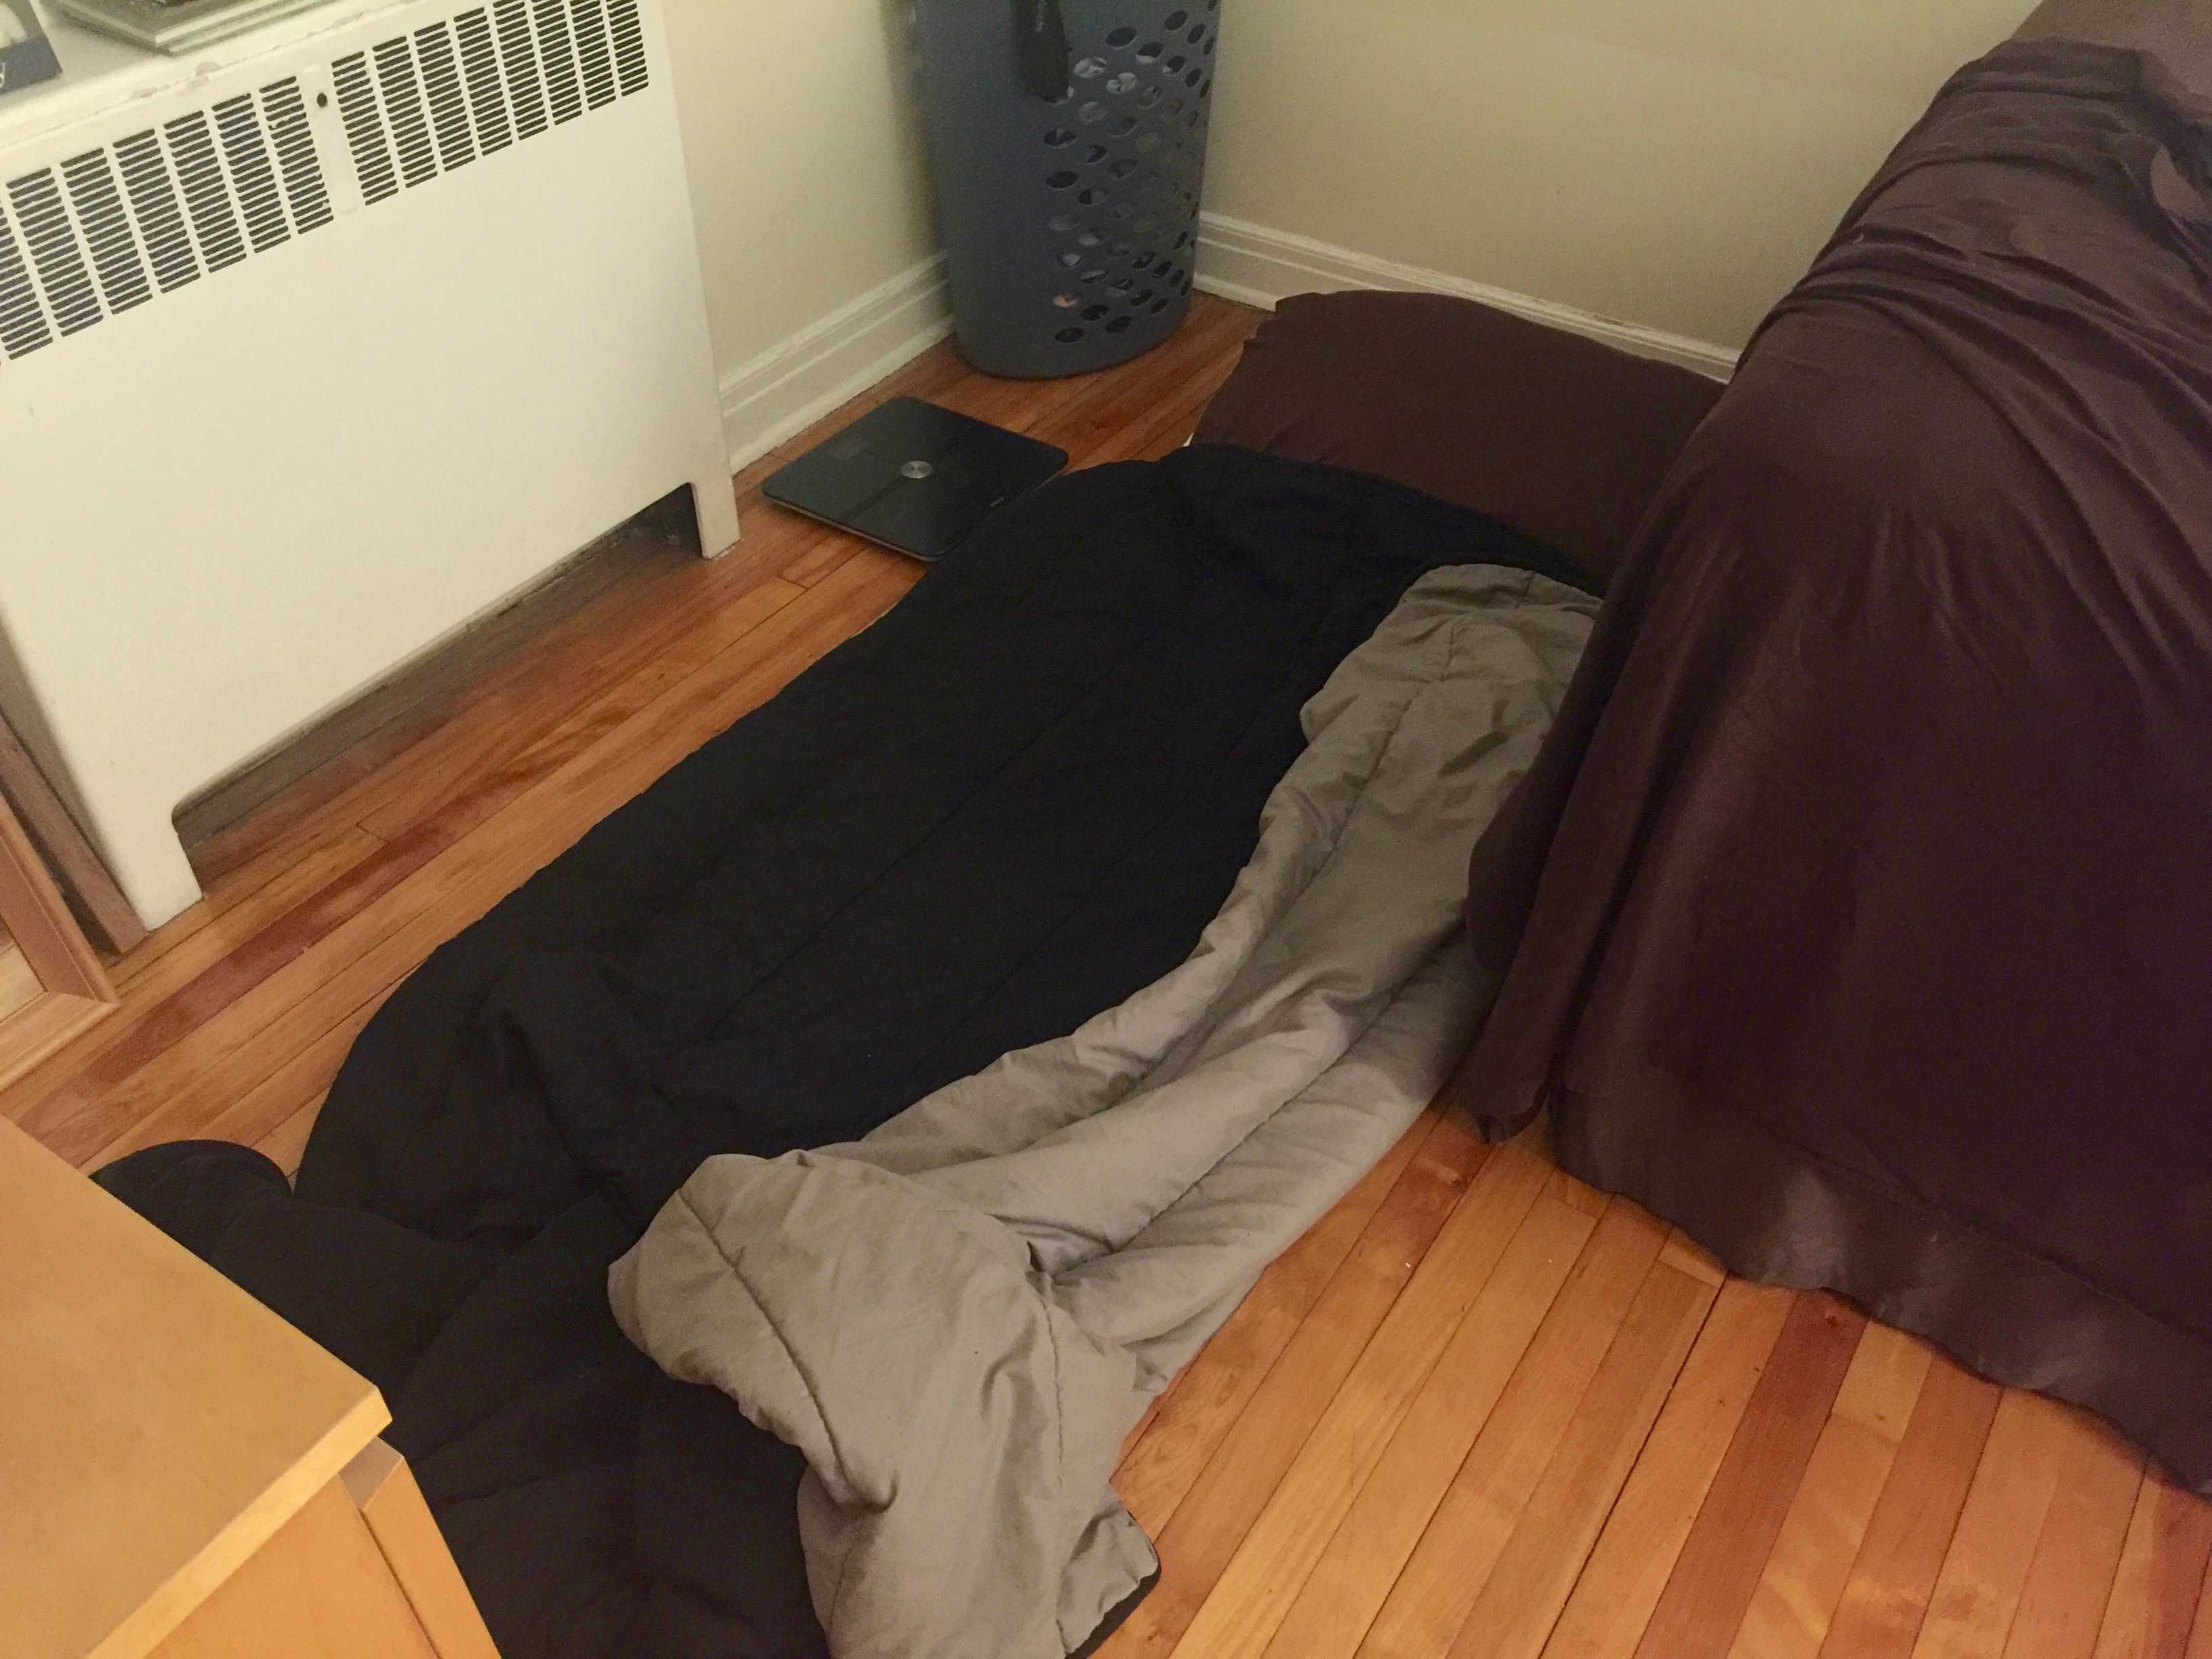 My bed for the month—a yoga mat that I kept on the floor beside my bed.